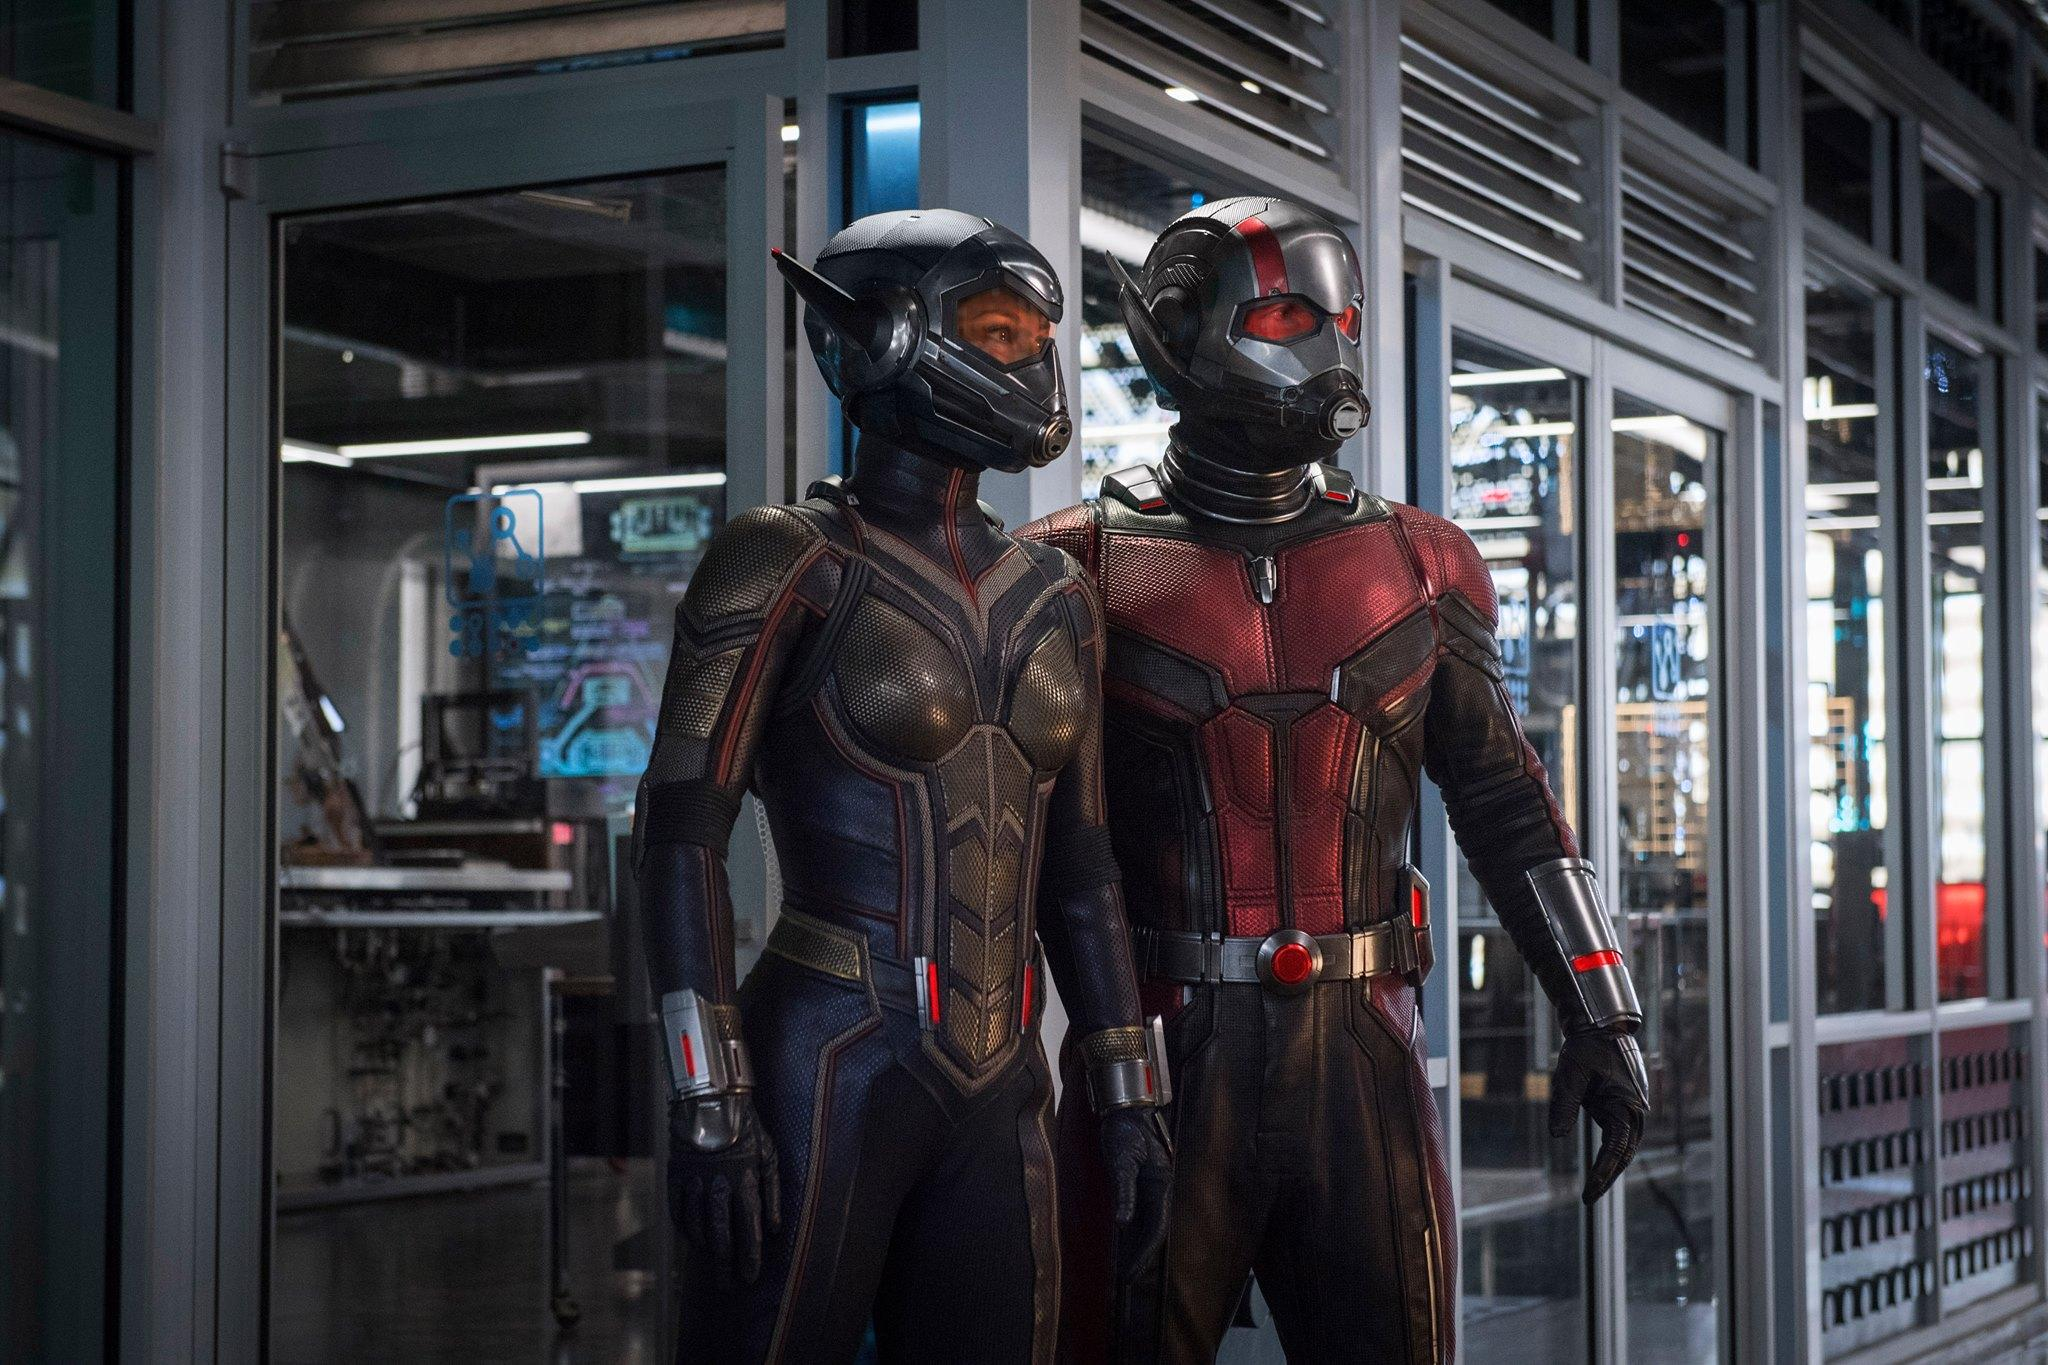 Ant-Man and the Wasp release date